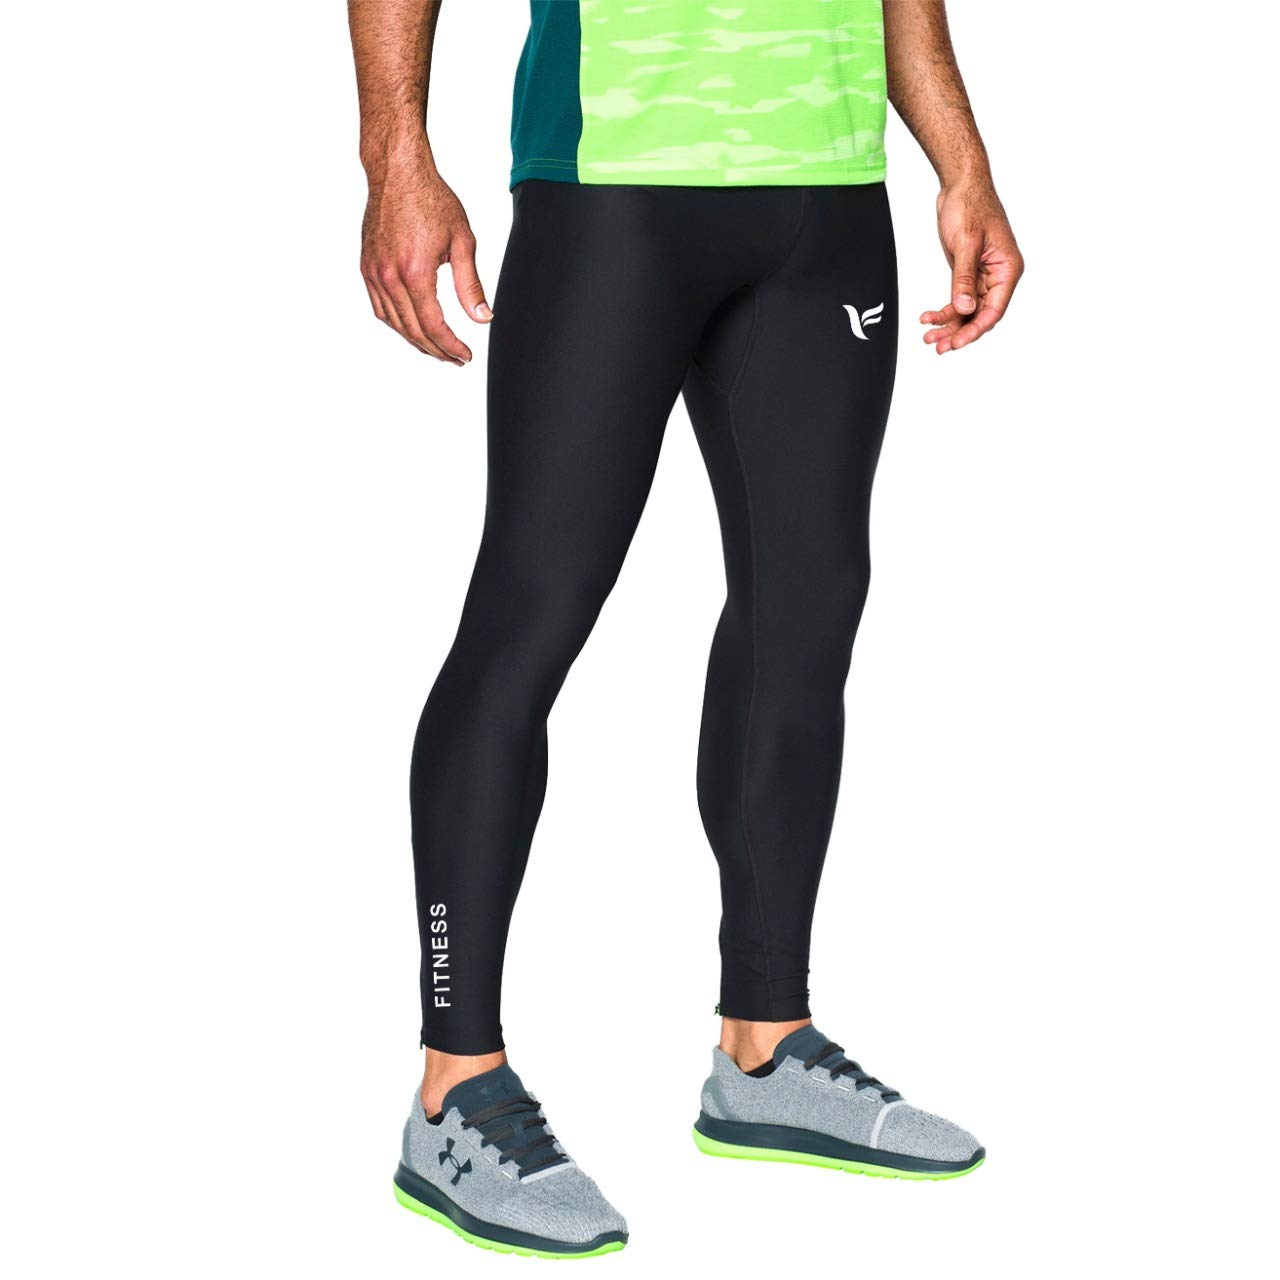 Mens Compression Pants Workout Leggings for Gym Basketball Cycling Yoga Hiking